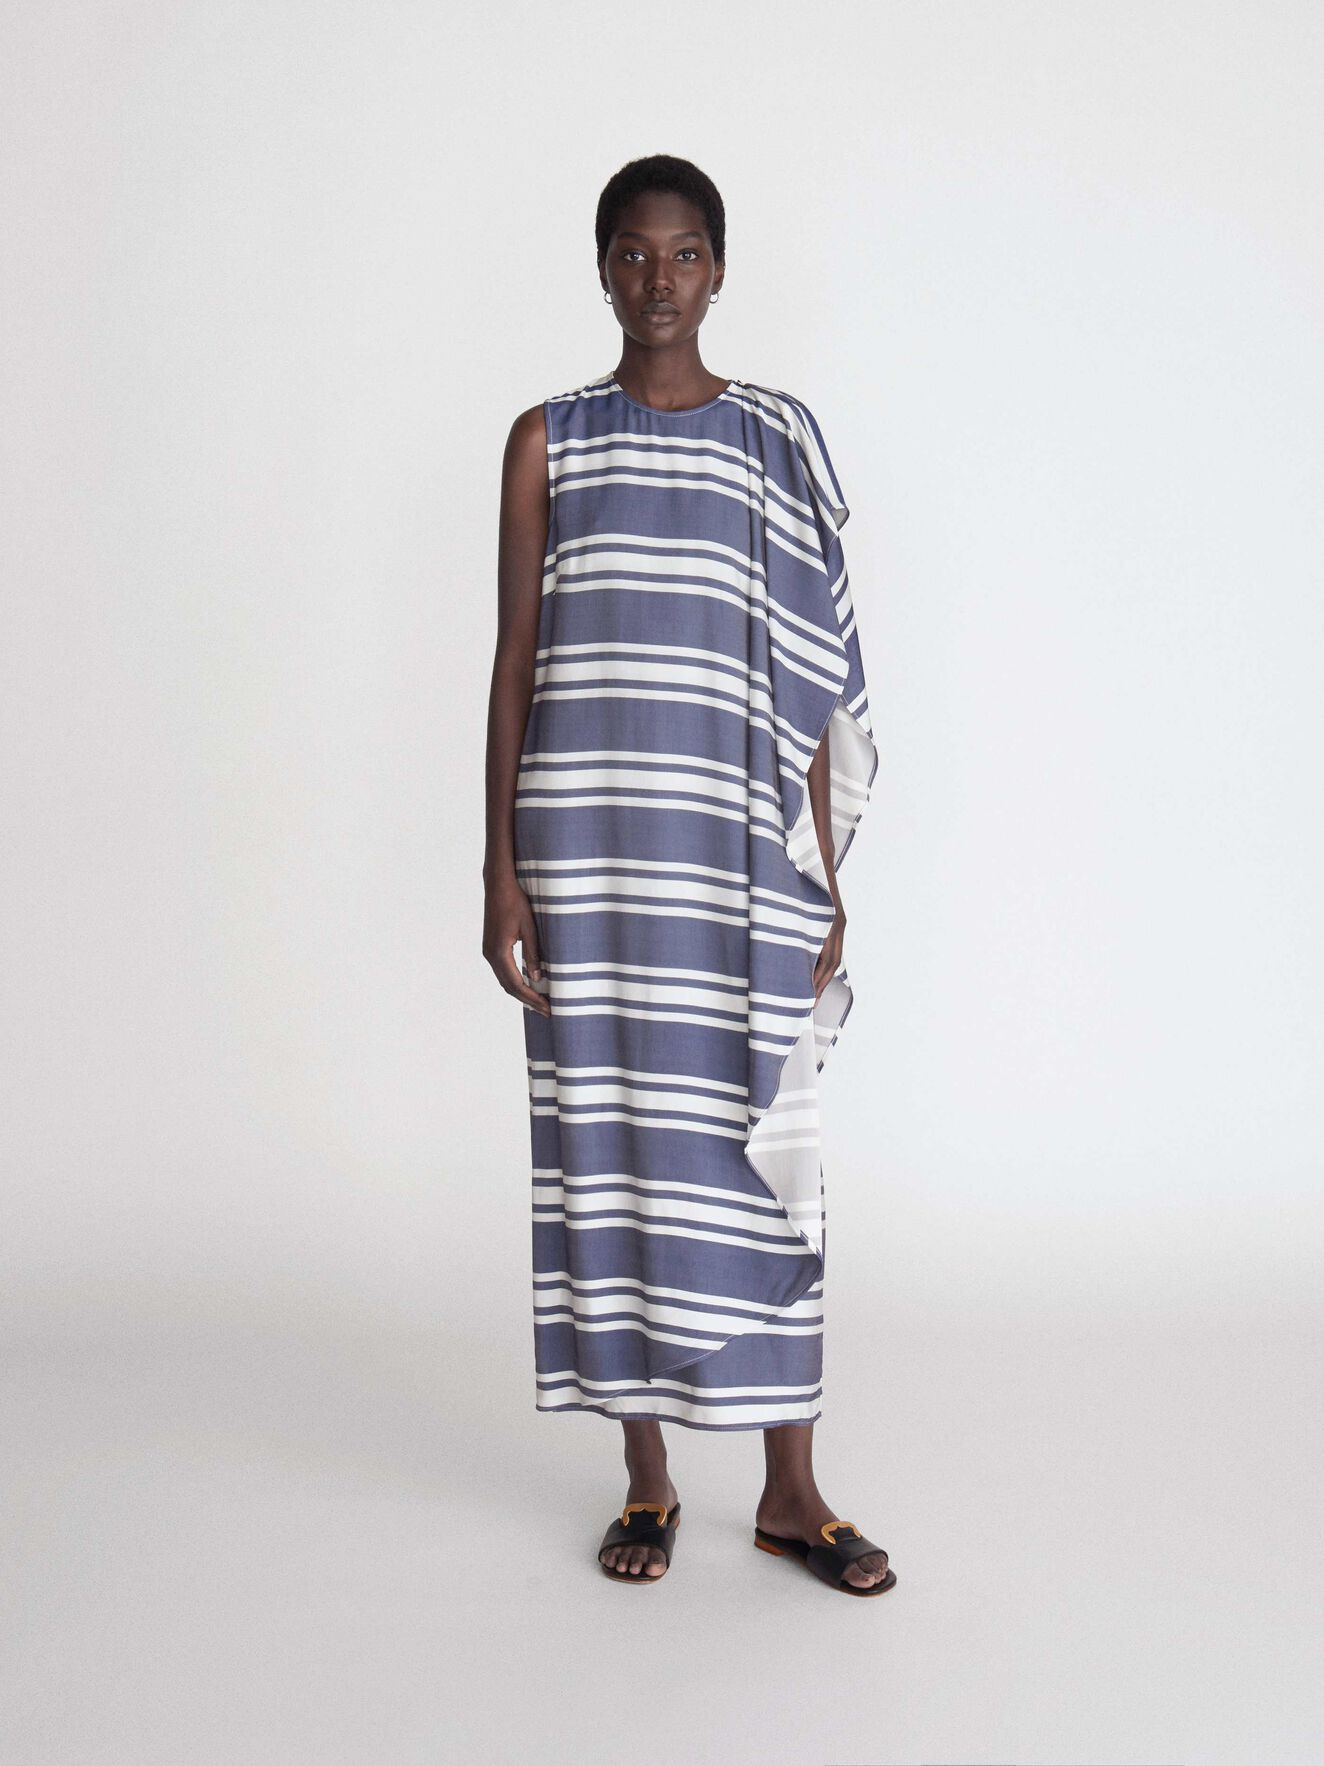 Saura S Dress in Deep Ocean Blue from Tiger of Sweden